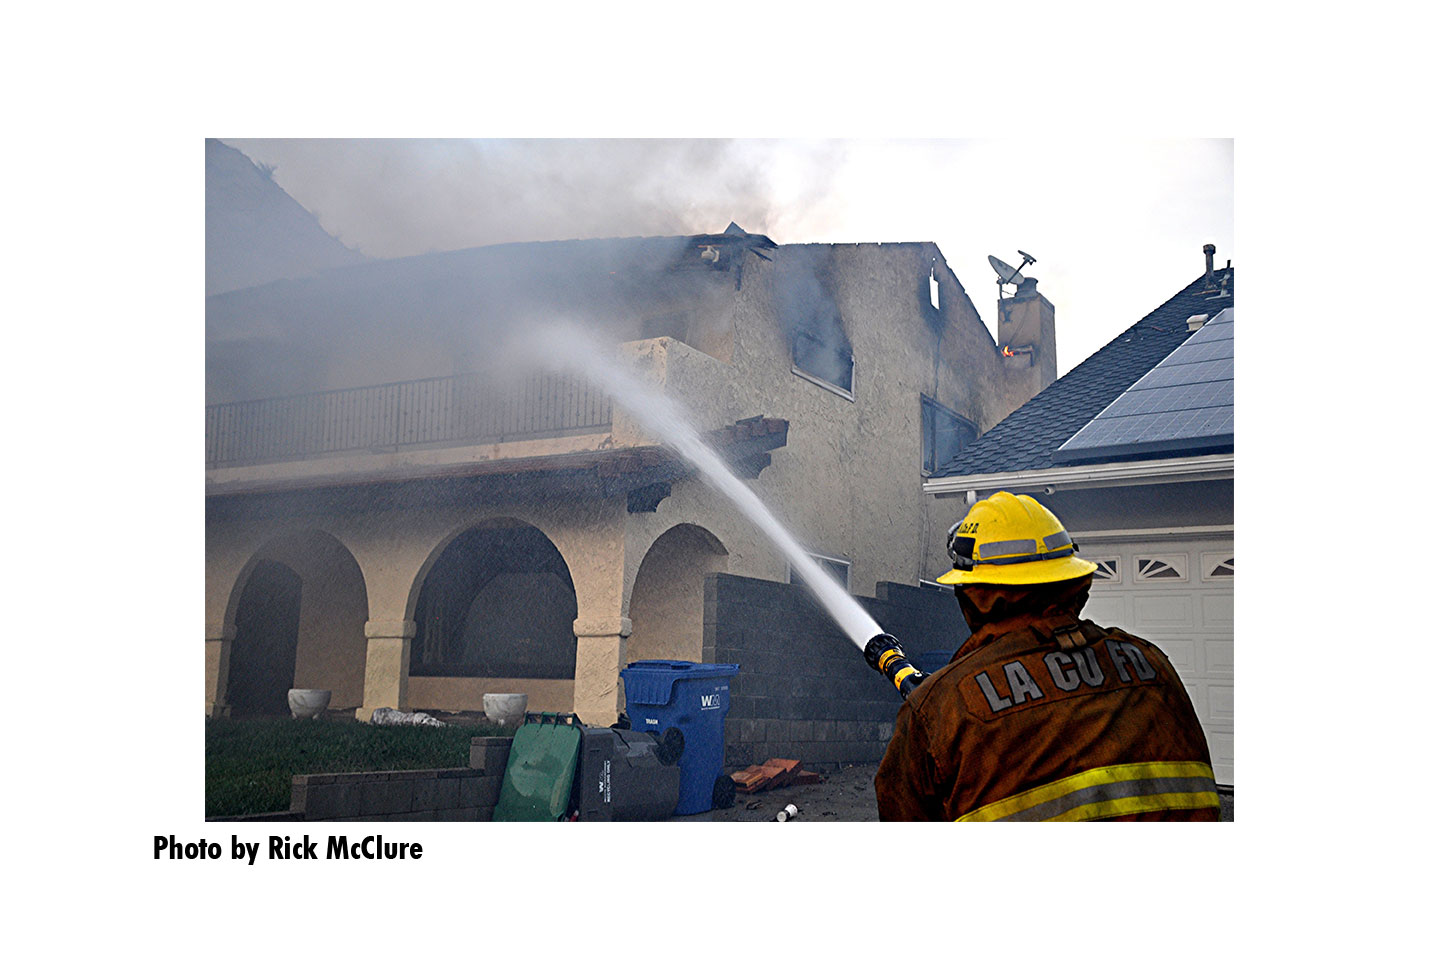 A Los Angeles County Fire Department member aims a hose stream onto a burning residence